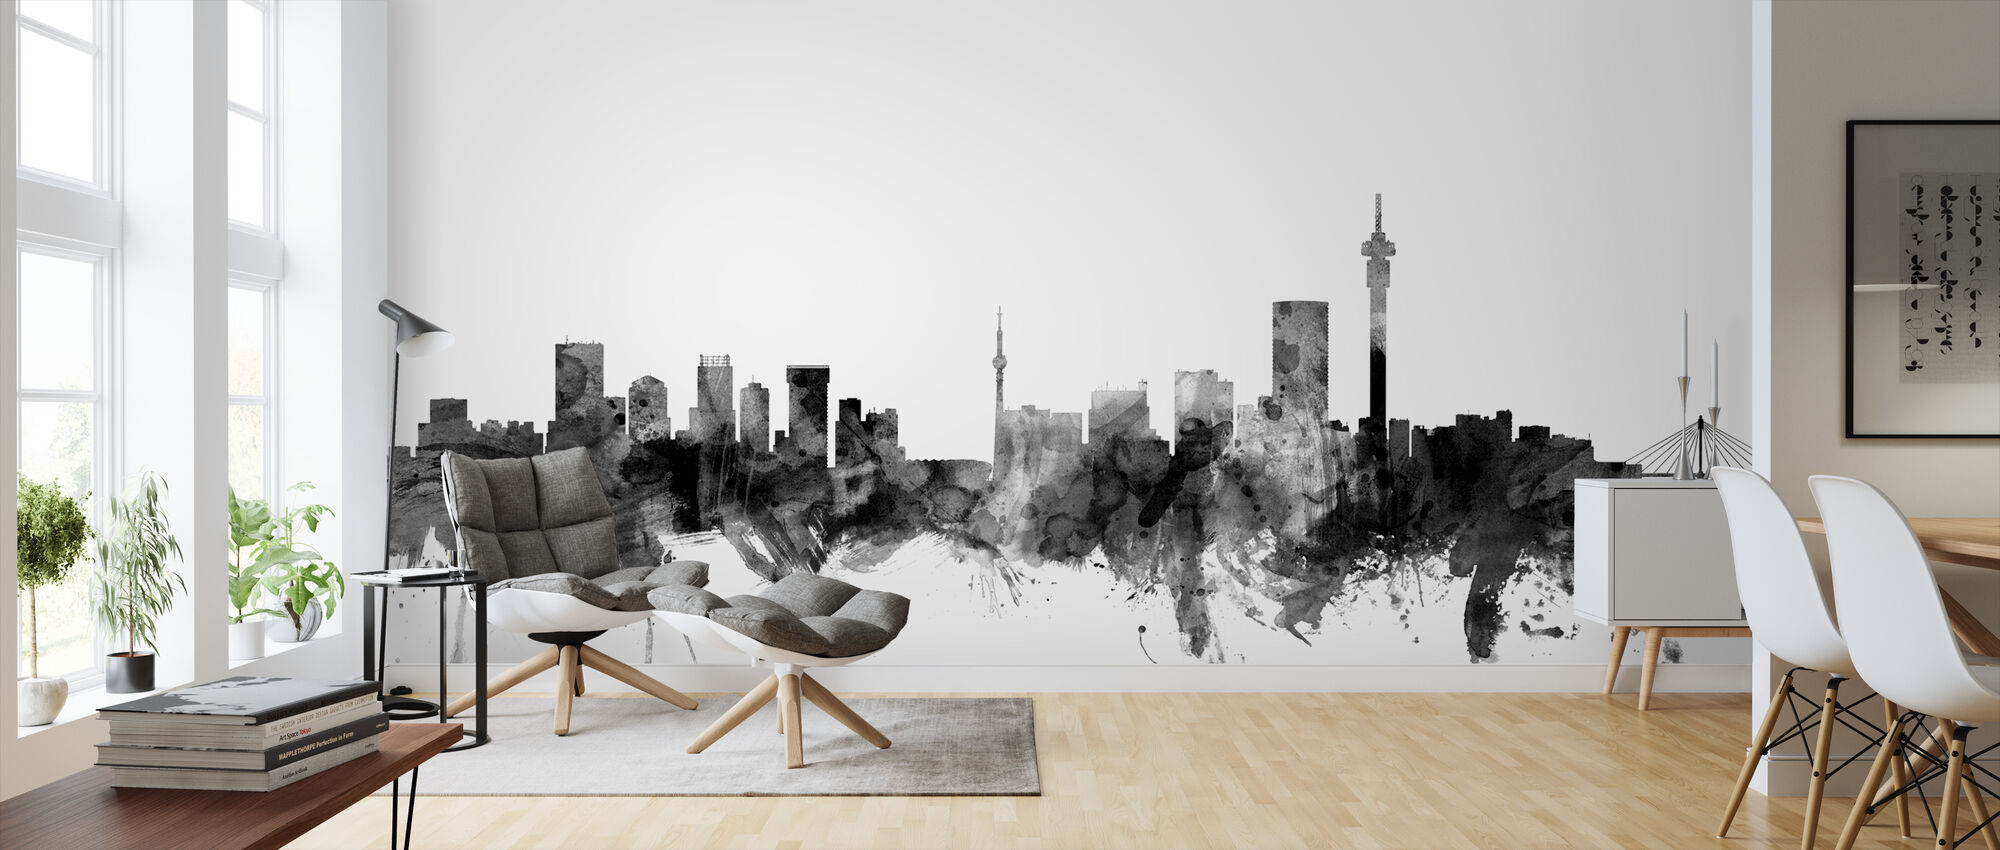 Johannesburg South Africa Skyline Black - Wallpaper - Living Room